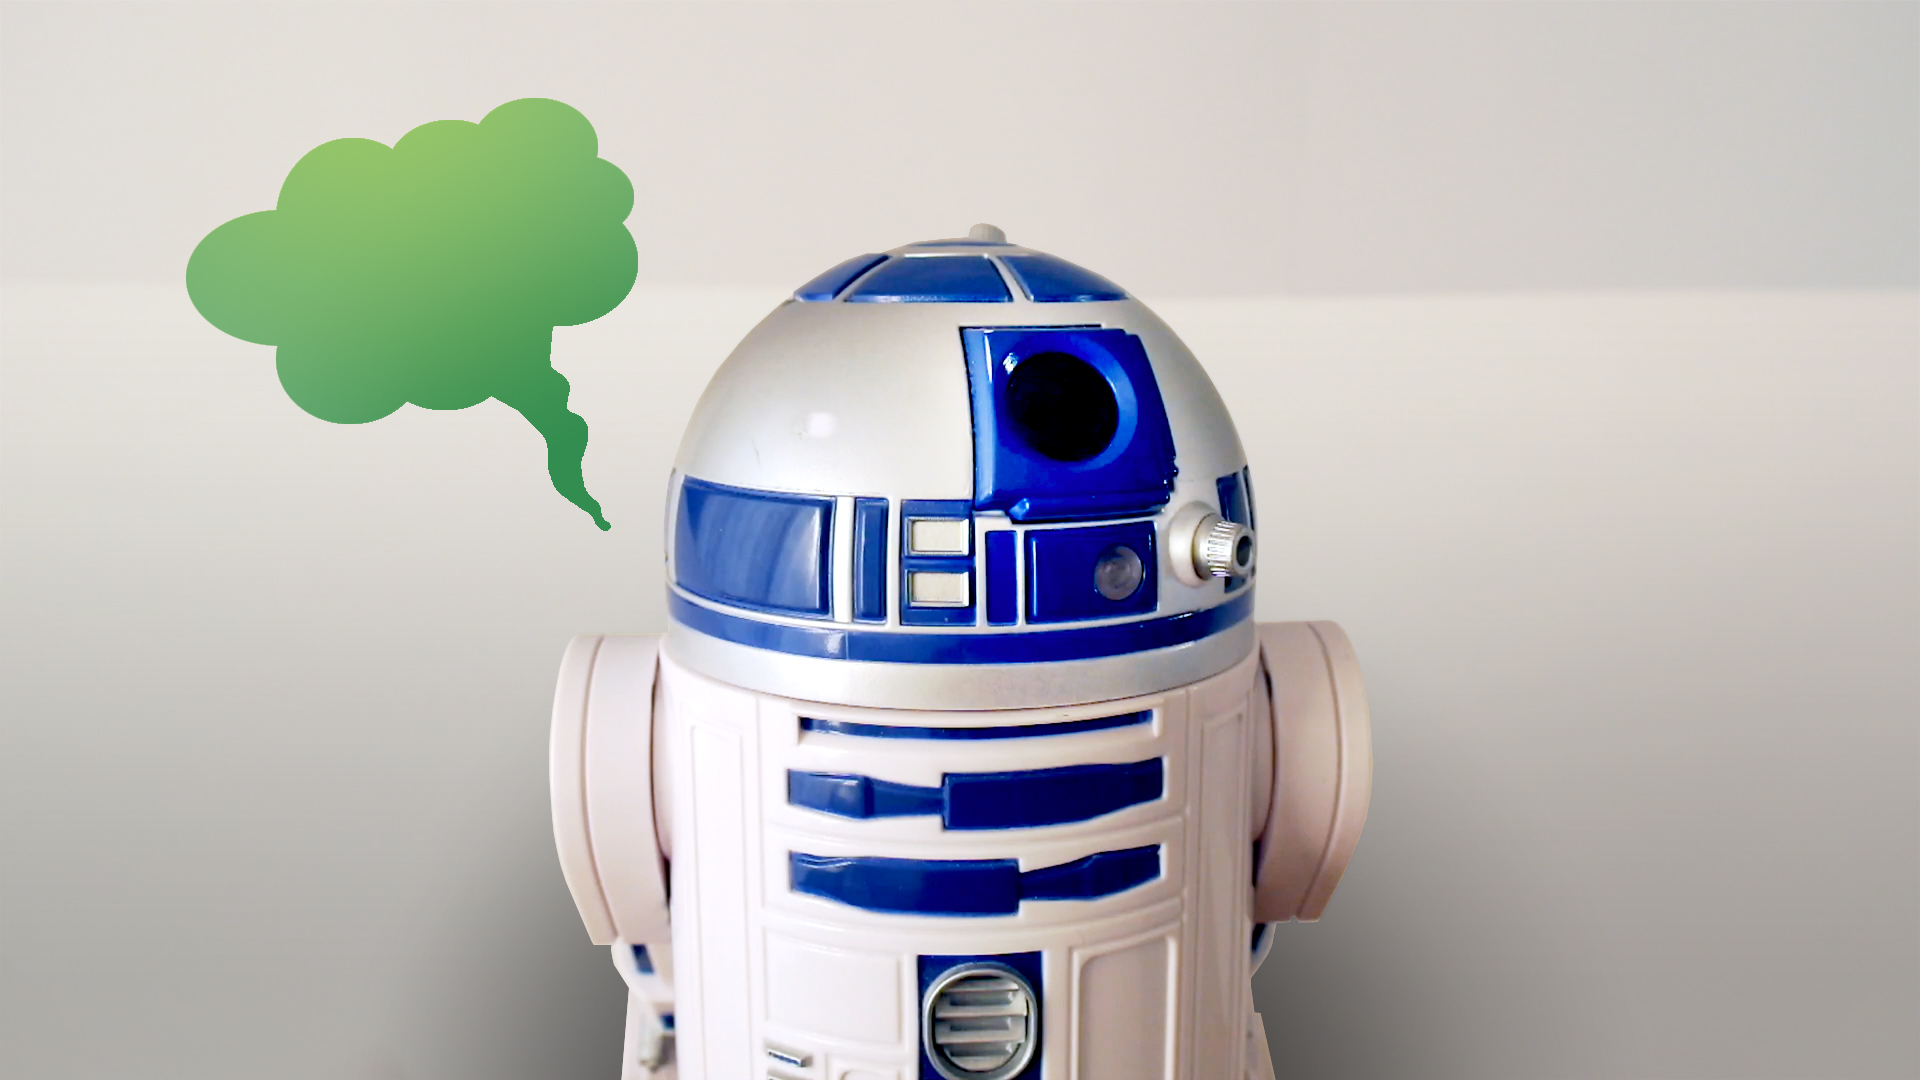 R2D2 farted on me!